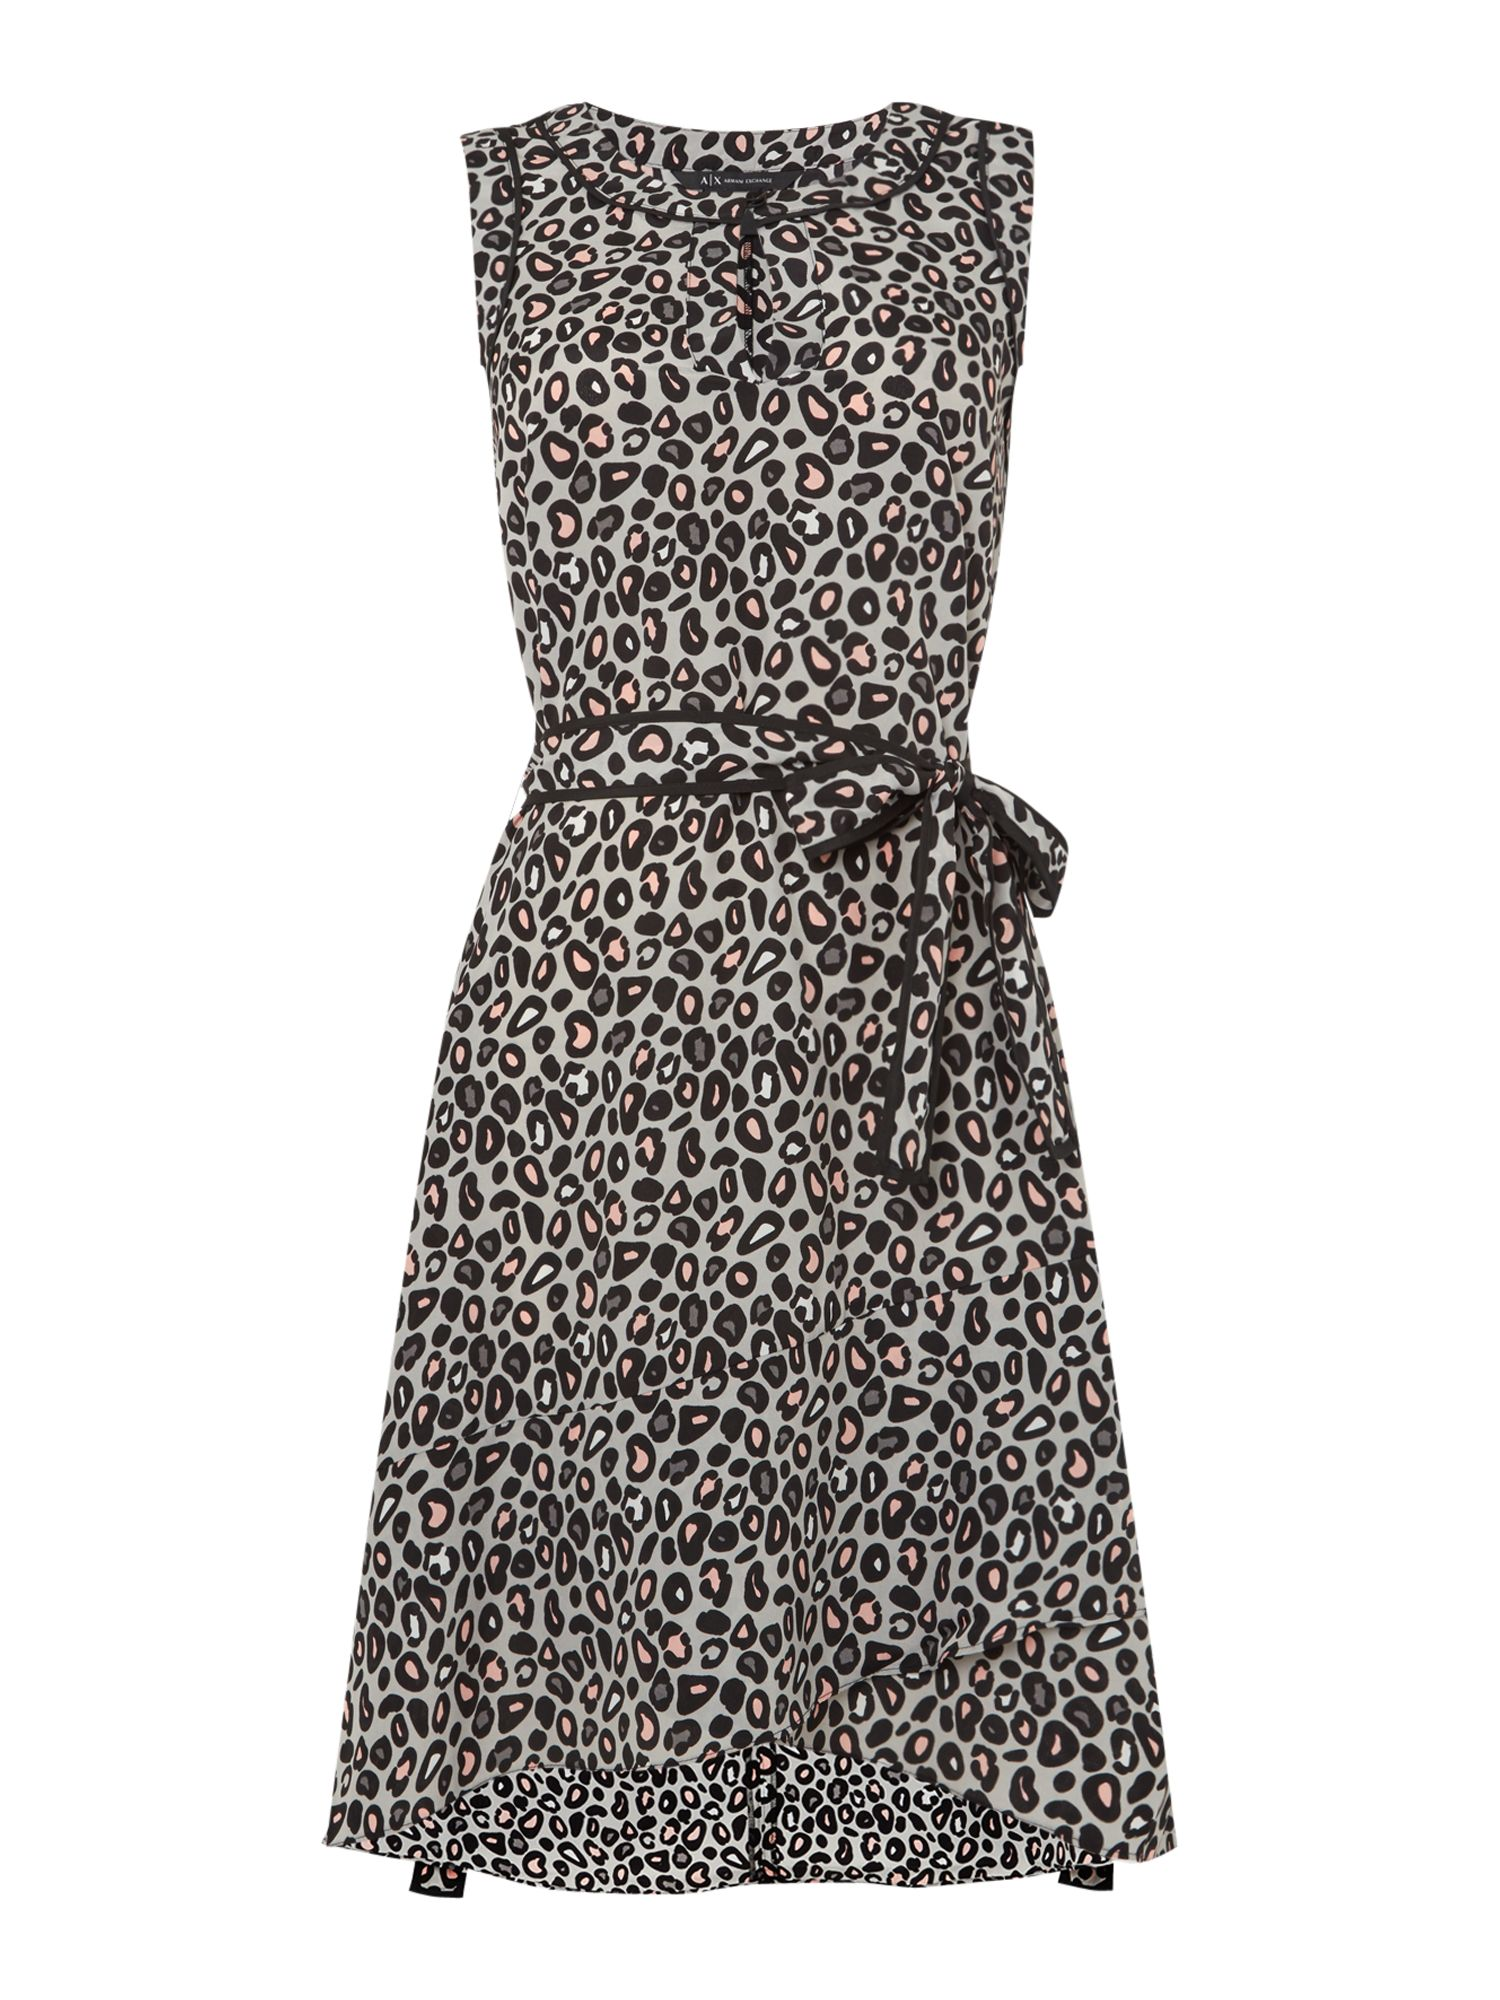 Armani Exchange Woven Dress in Grey Copenhagen, Grey